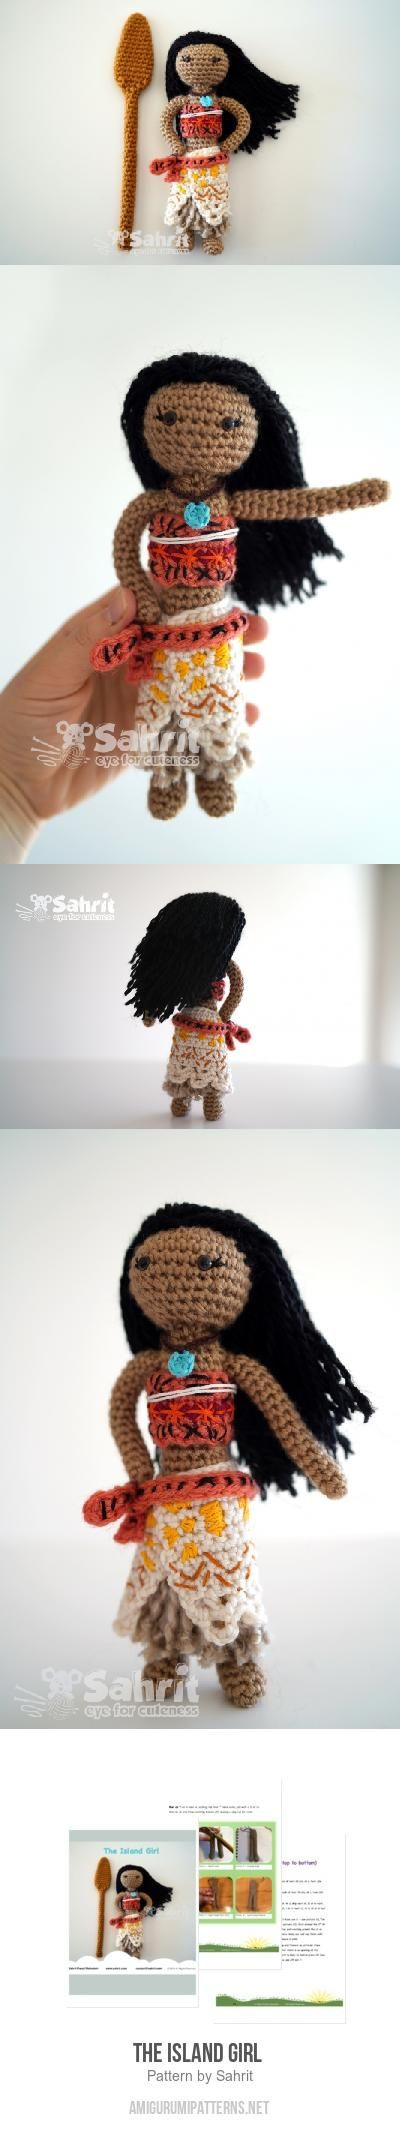 776 best crochet doll images on Pinterest | Amigurumi, Amigurumi ...